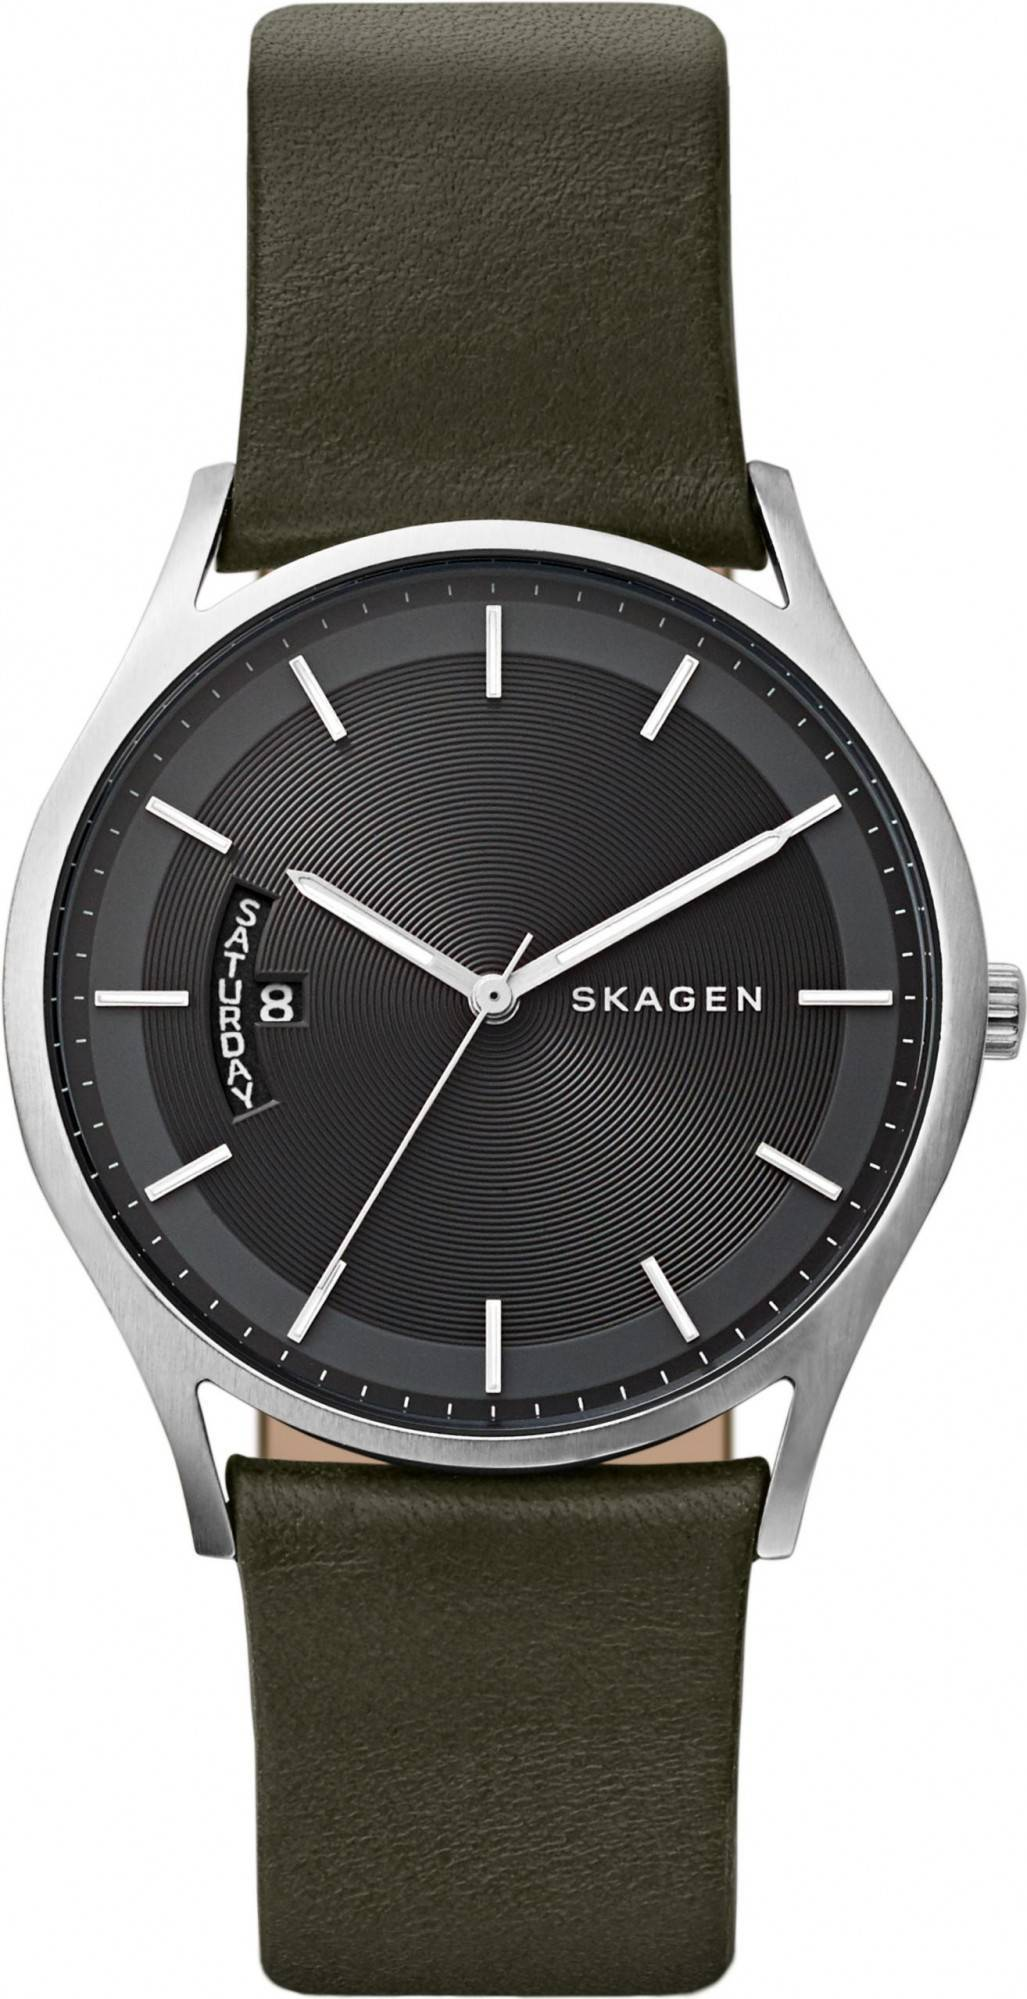 Montre analogique Quartz Skagen Holst SKW6394 masculin